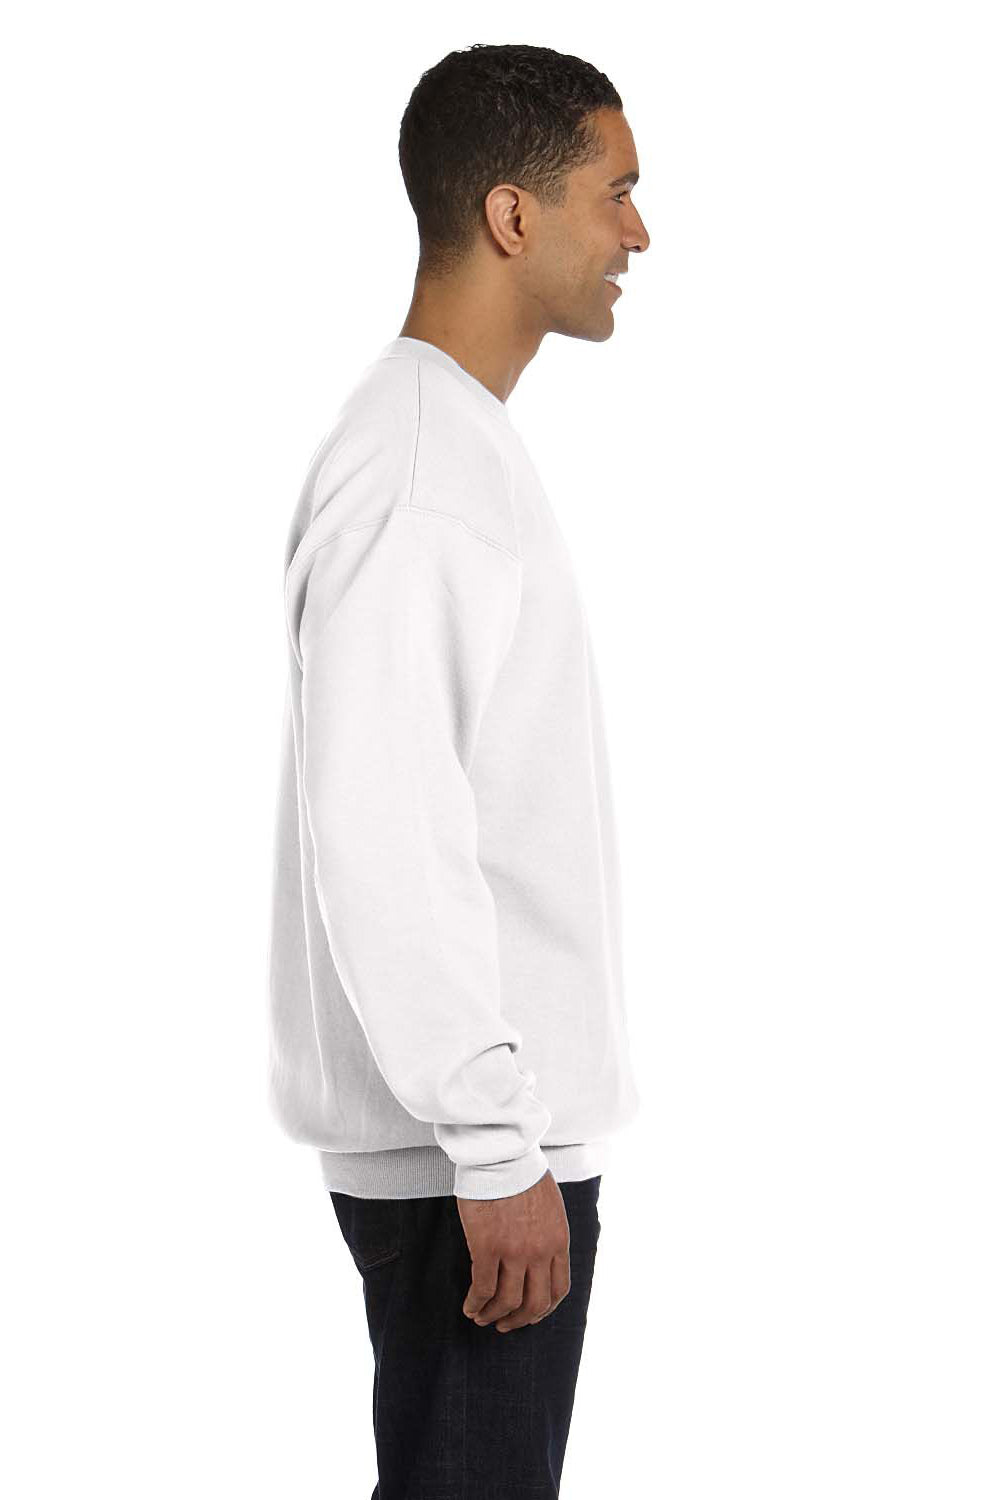 Champion S600 Mens Double Dry Eco Moisture Wicking Fleece Crewneck Sweatshirt White Side